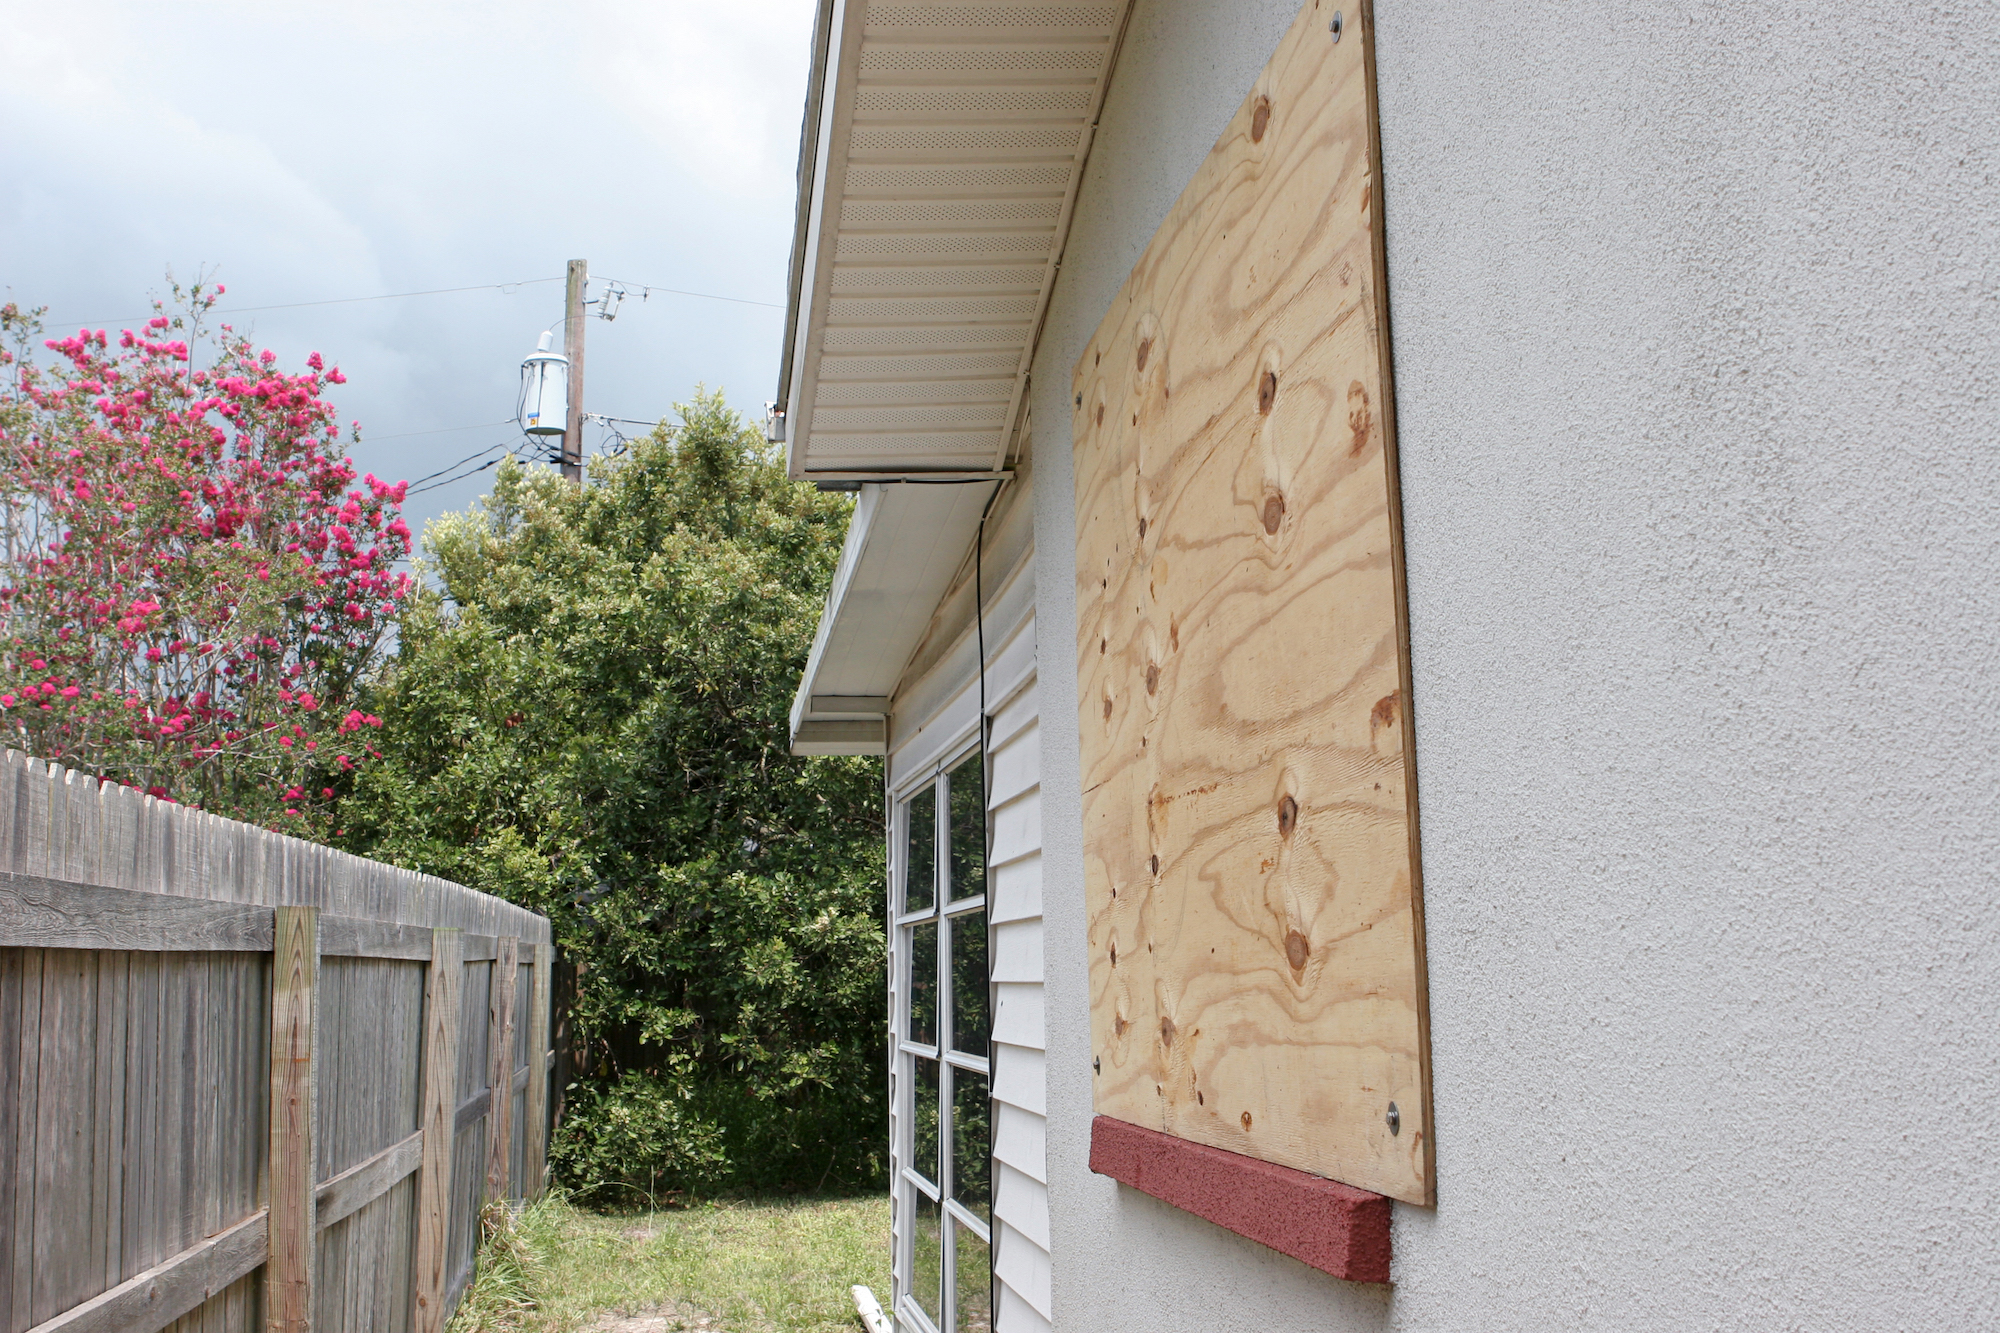 A home with plywood covering the window in preparation for a hurricane.